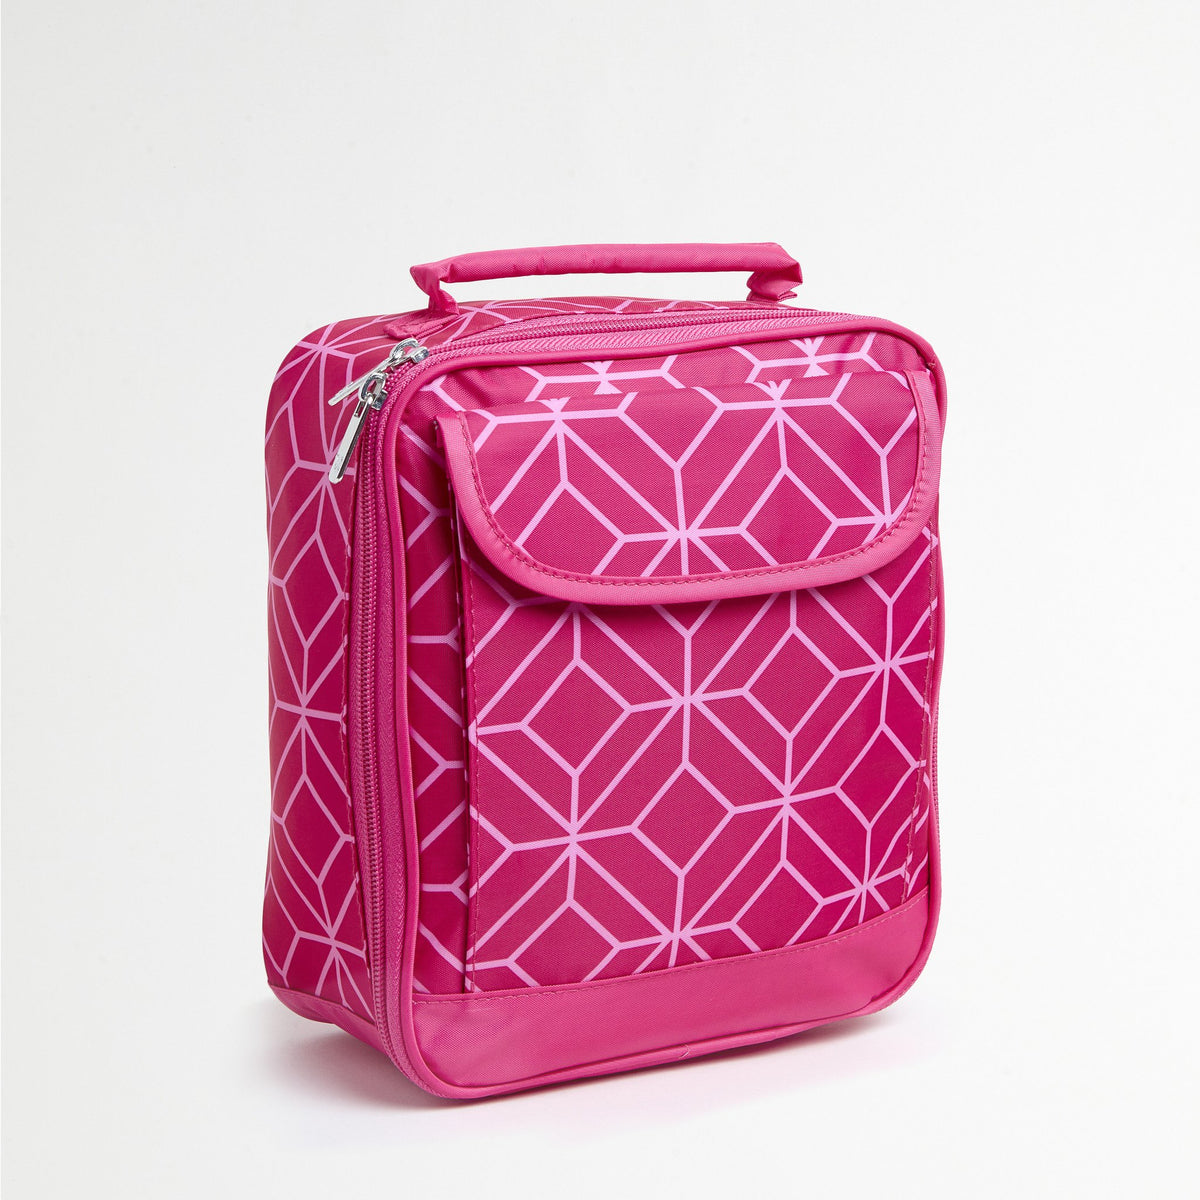 Pink Gem Lunch Tote